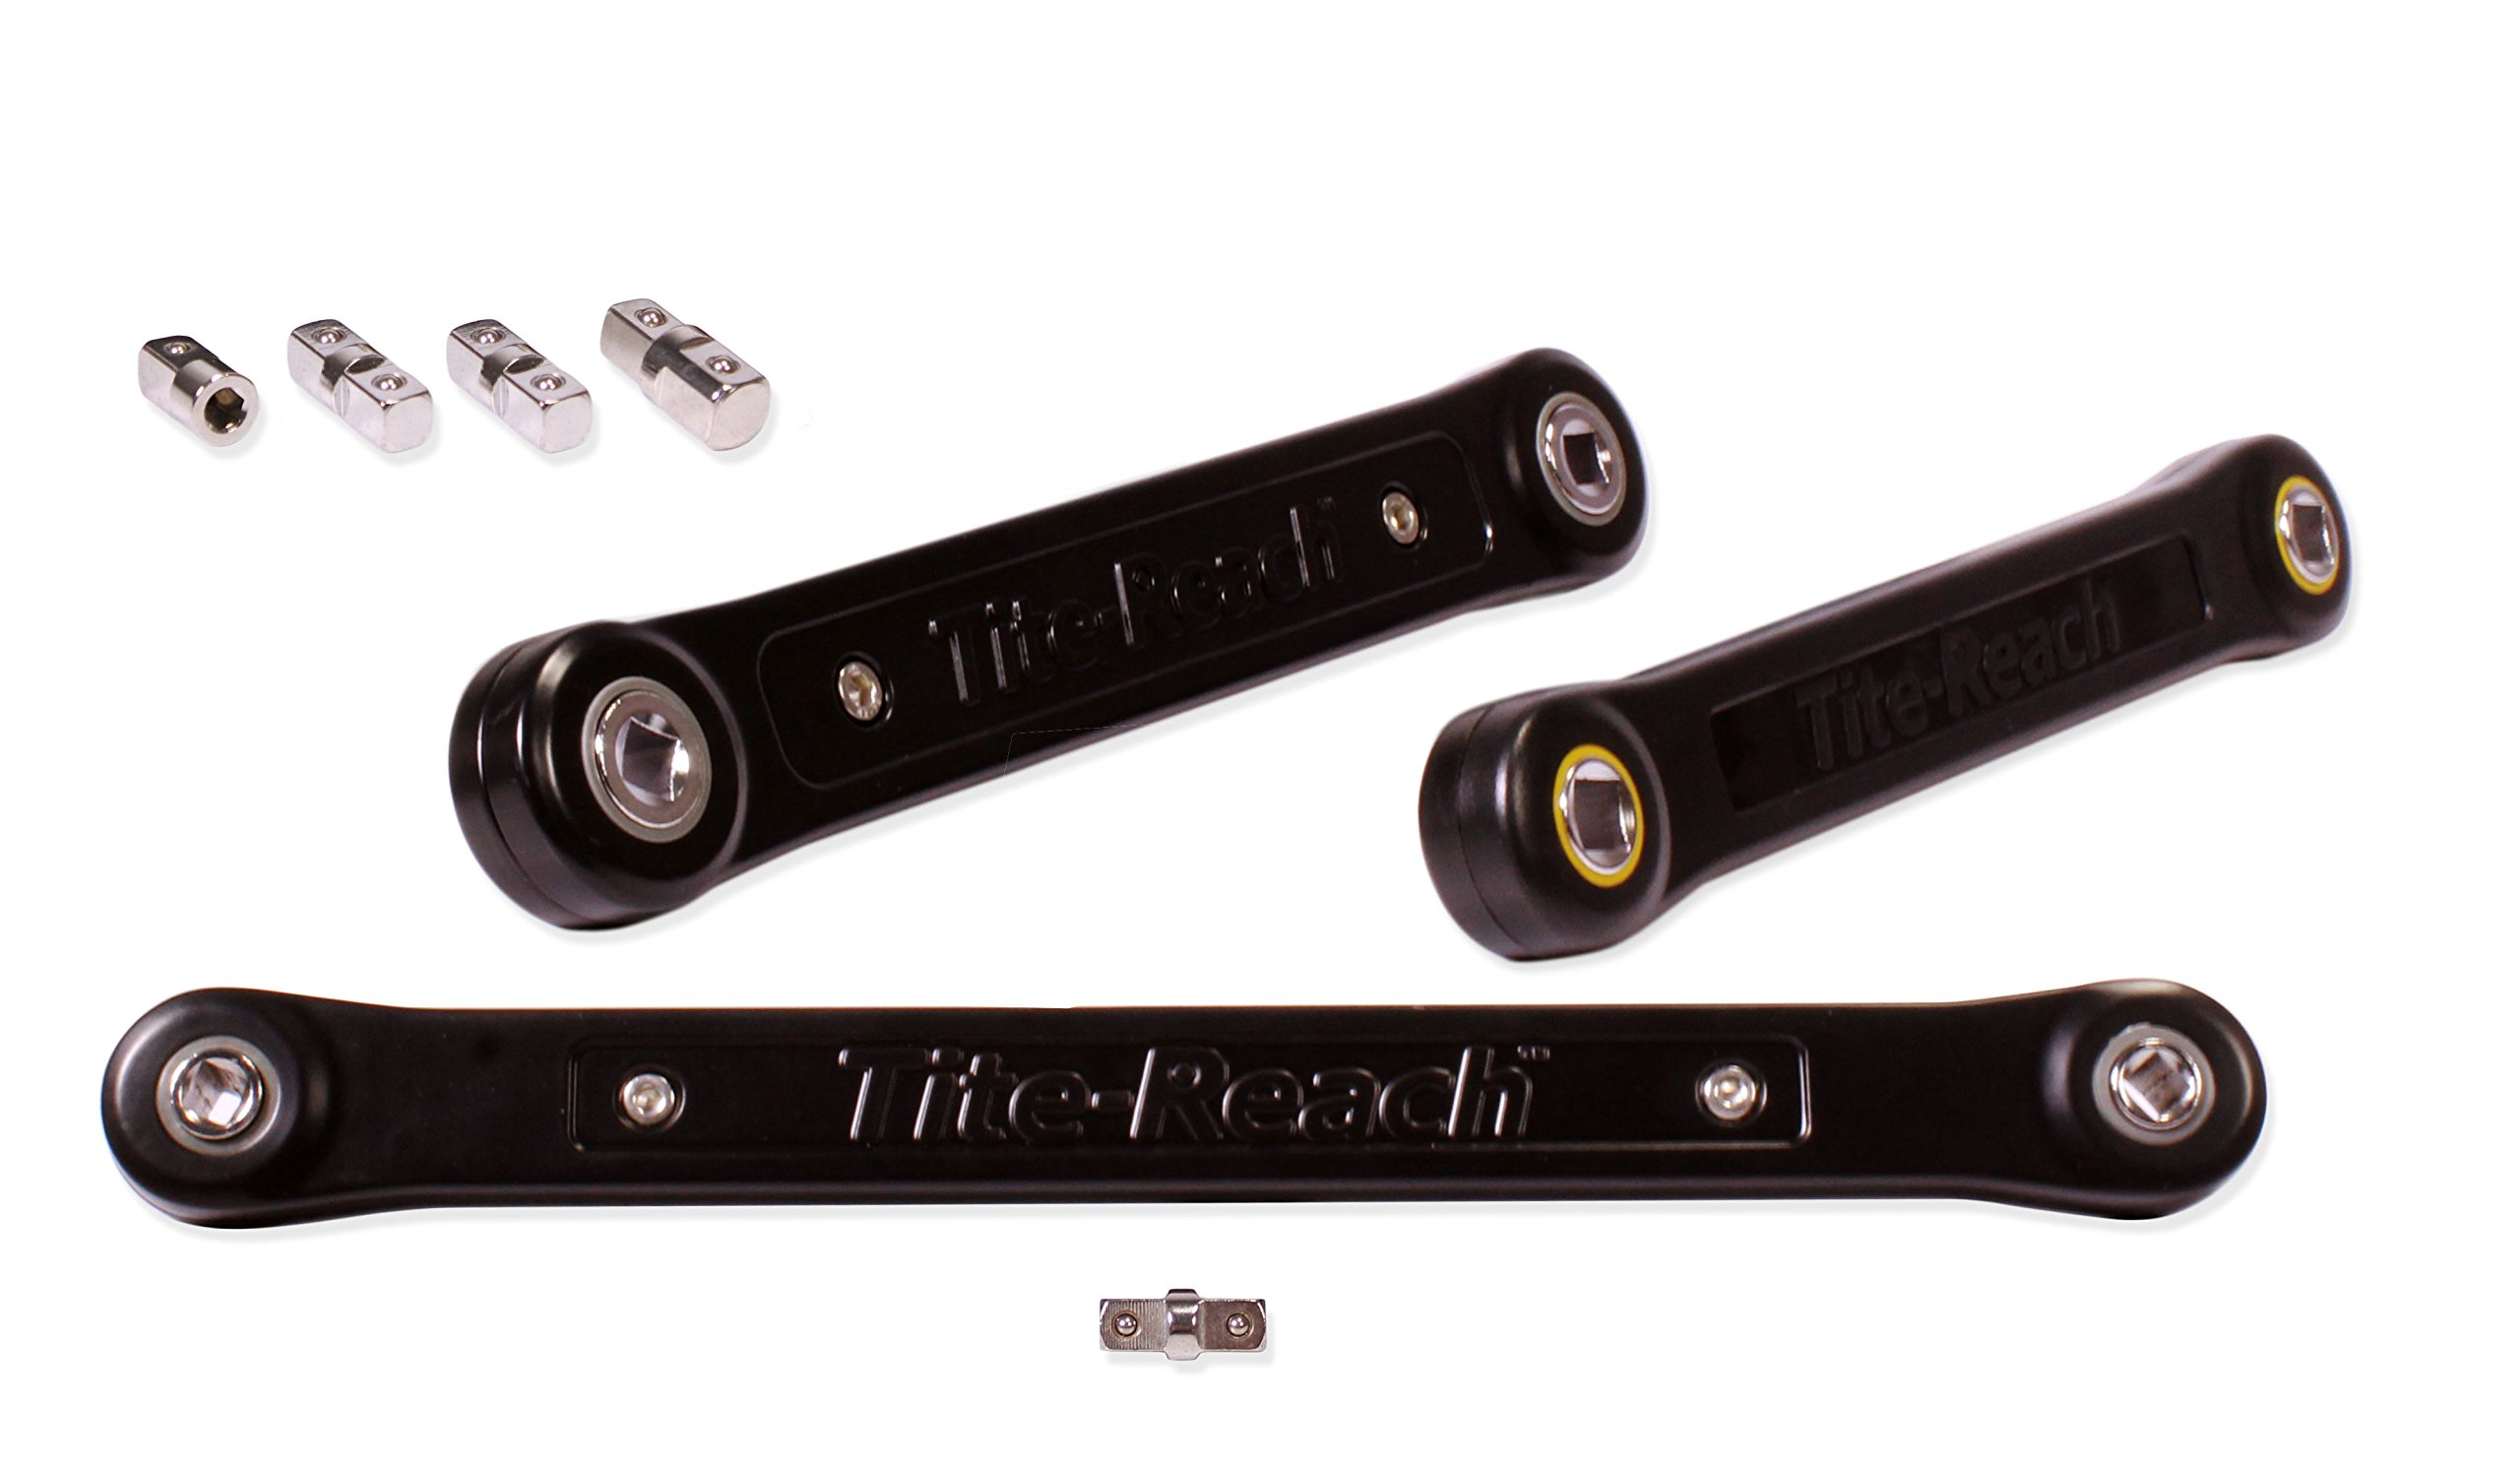 Tite-reach Extension Wrench Tri-pack